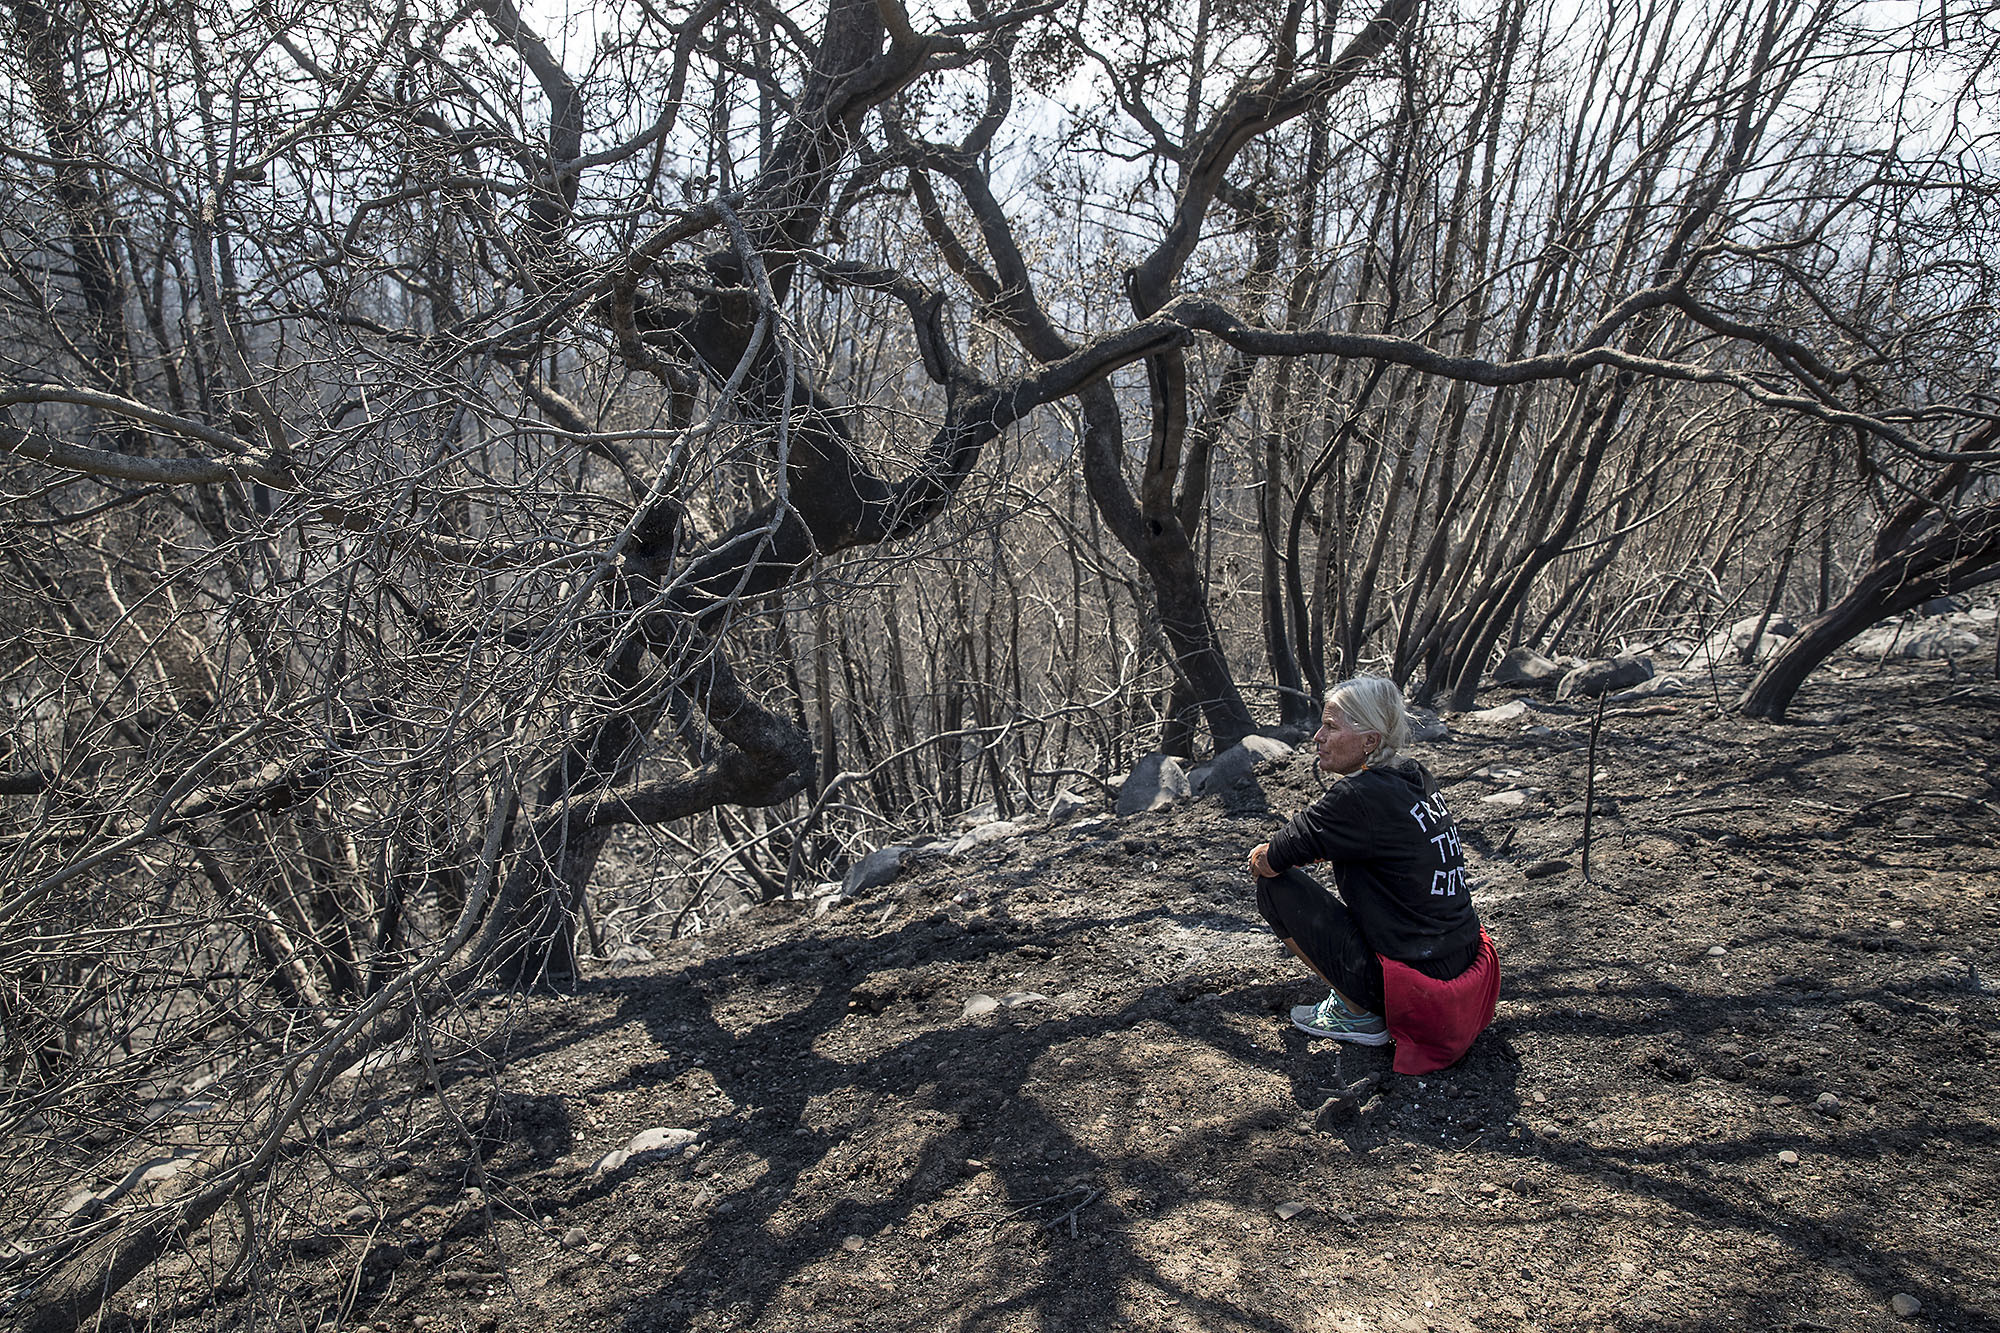 Jan Pascoe sits among the burned landscape near her home where she and husband John survived the firestorm Monday morning by running out of their home and into their neighbors swimming pool in Santa Rosa.